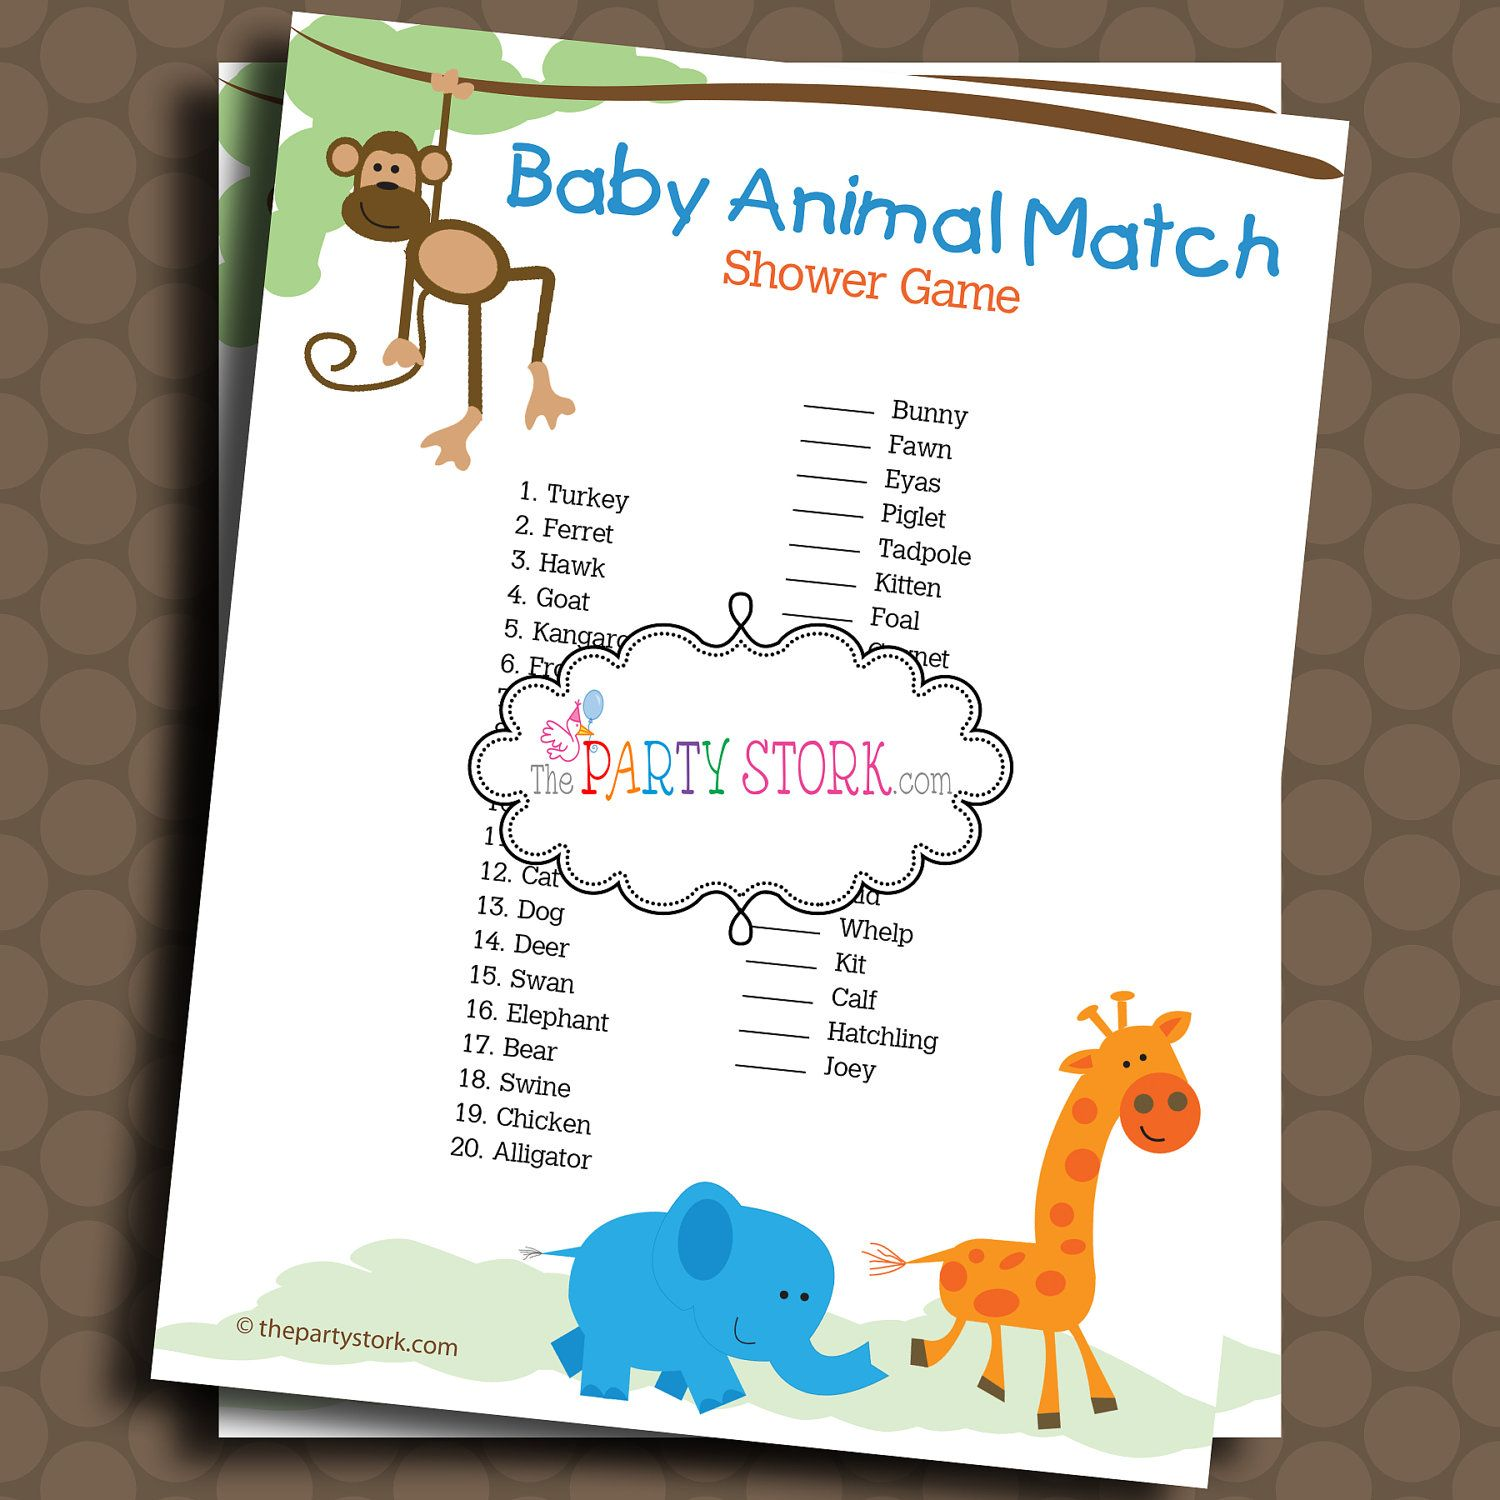 Baby Animal Match Shower Game Safari Theme Printable Baby Shower Games By The Party Stork You